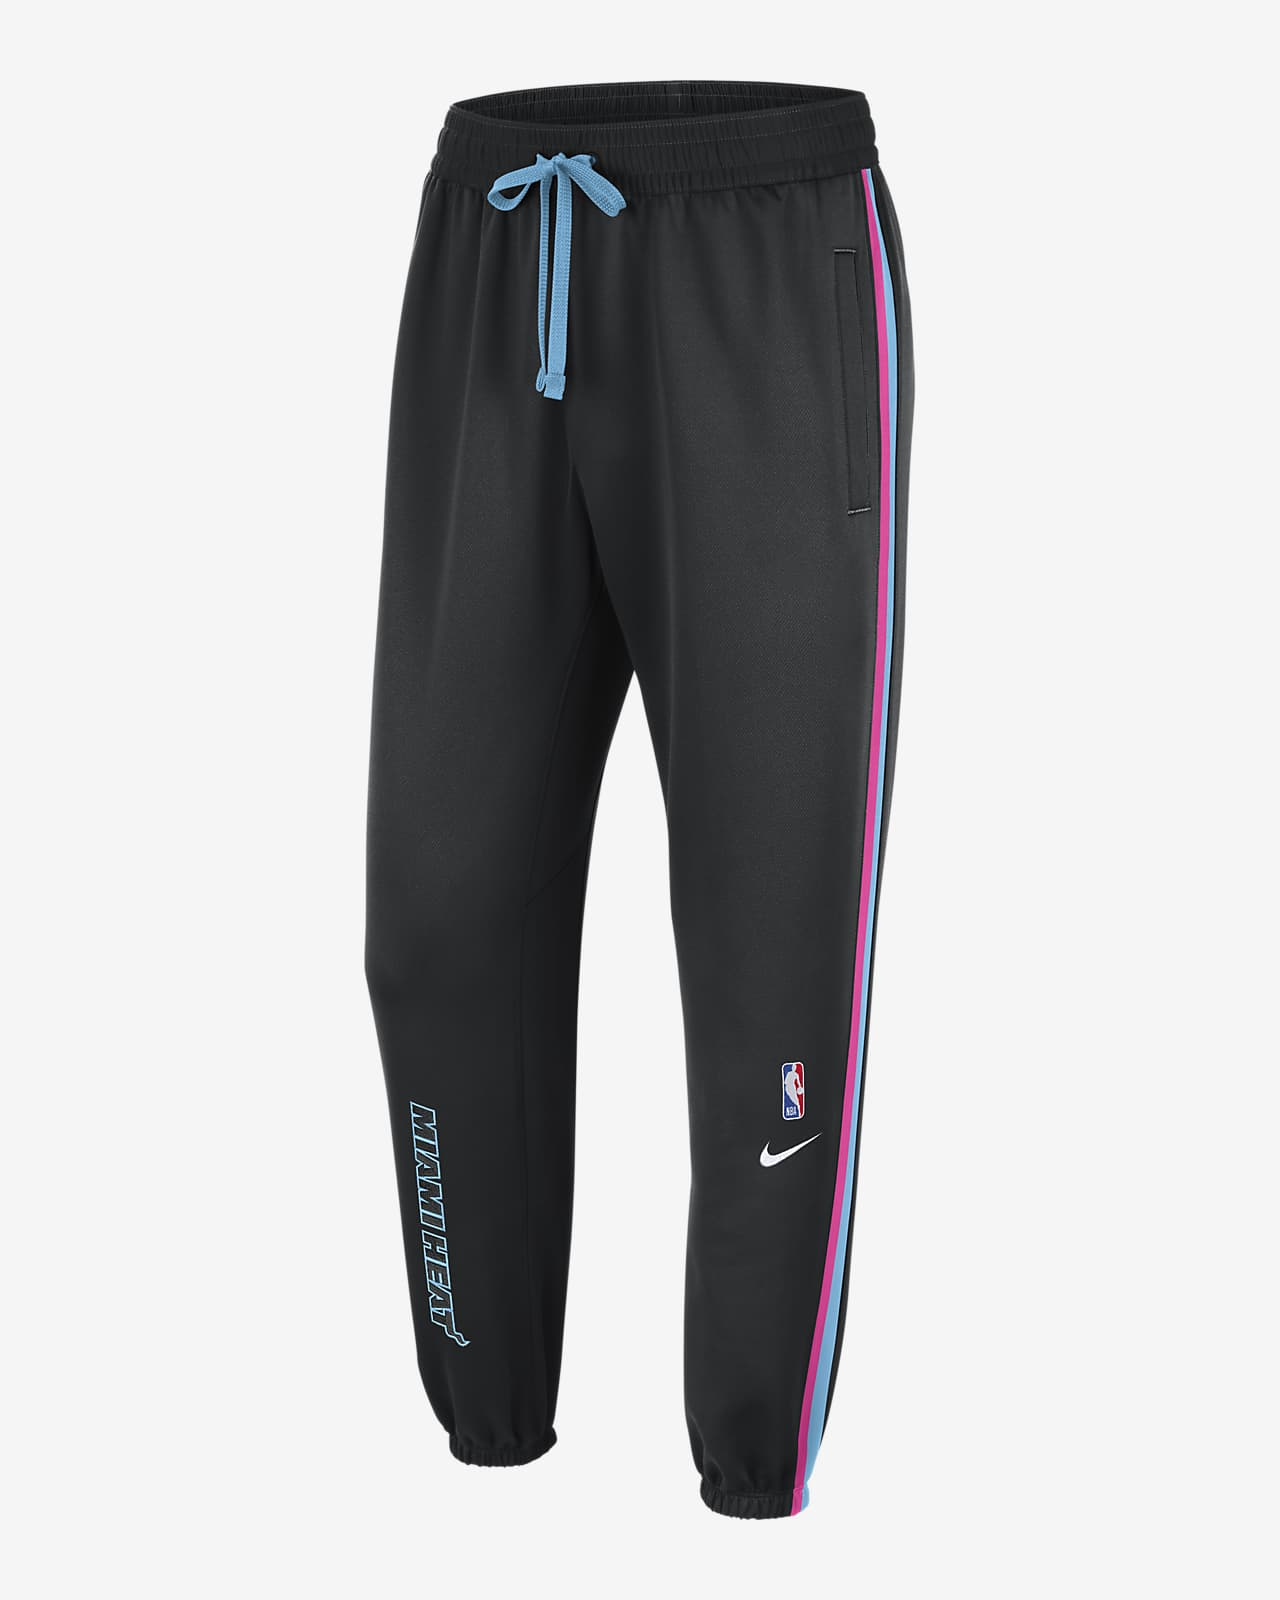 Pantalones de la NBA Nike Therma Flex para hombre Miami Heat Showtime City Edition